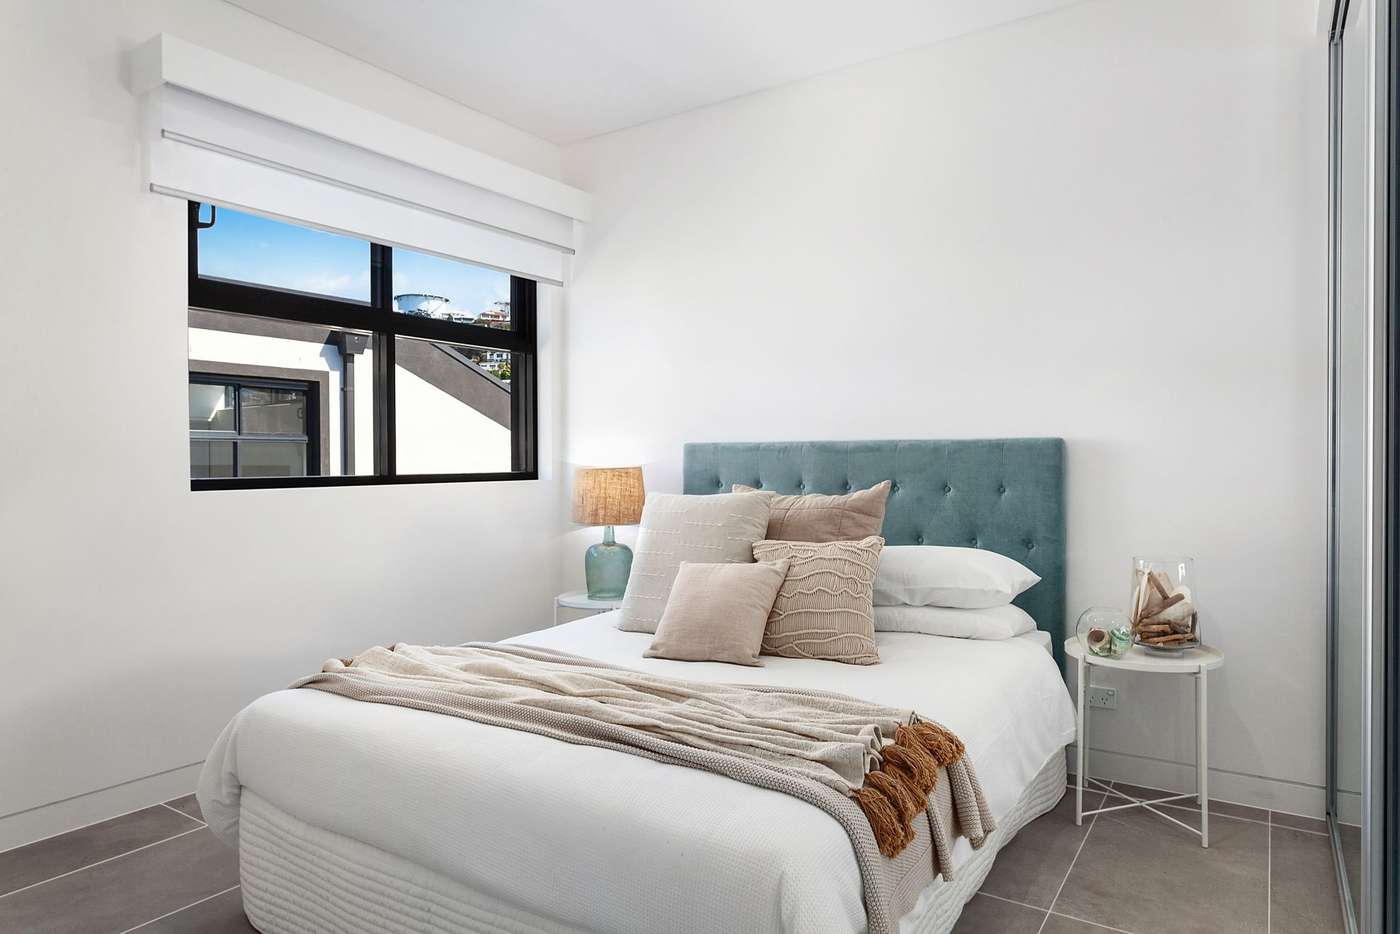 Sixth view of Homely unit listing, 1/33 Ash Street, Terrigal NSW 2260